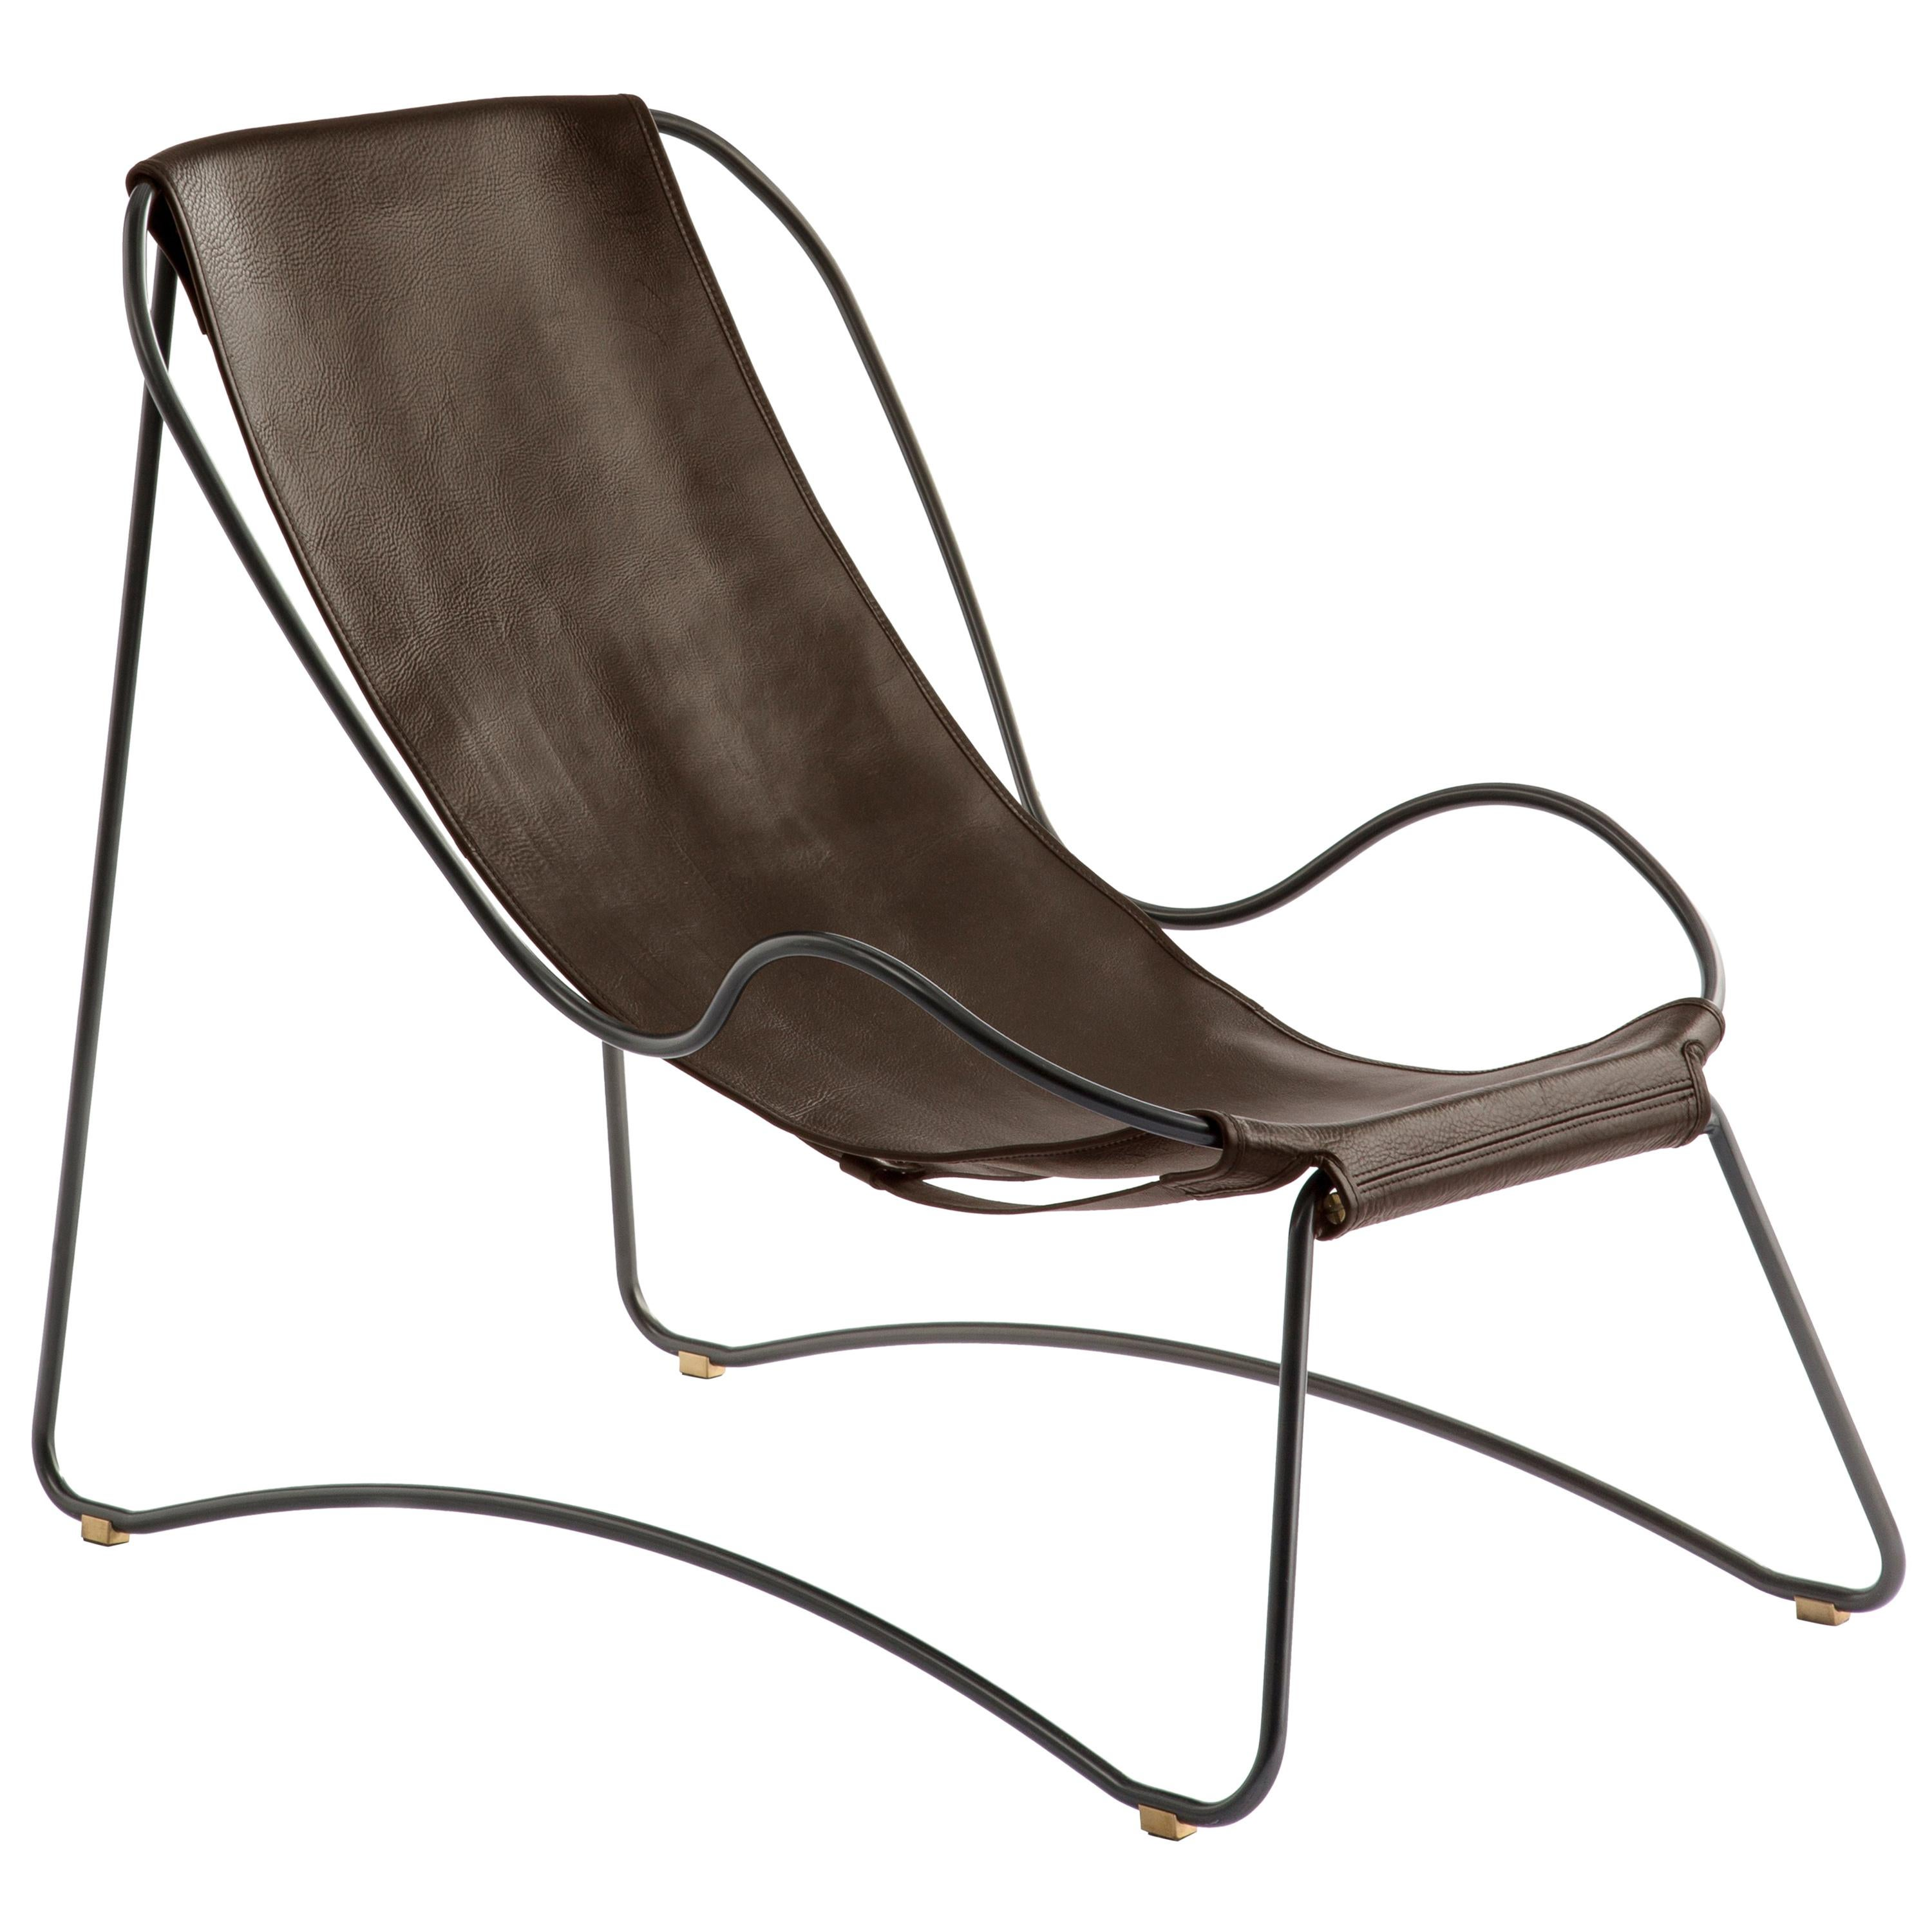 Chaise Longue, Black Smoke Steel and  Dark Brown Leather, Modern Style